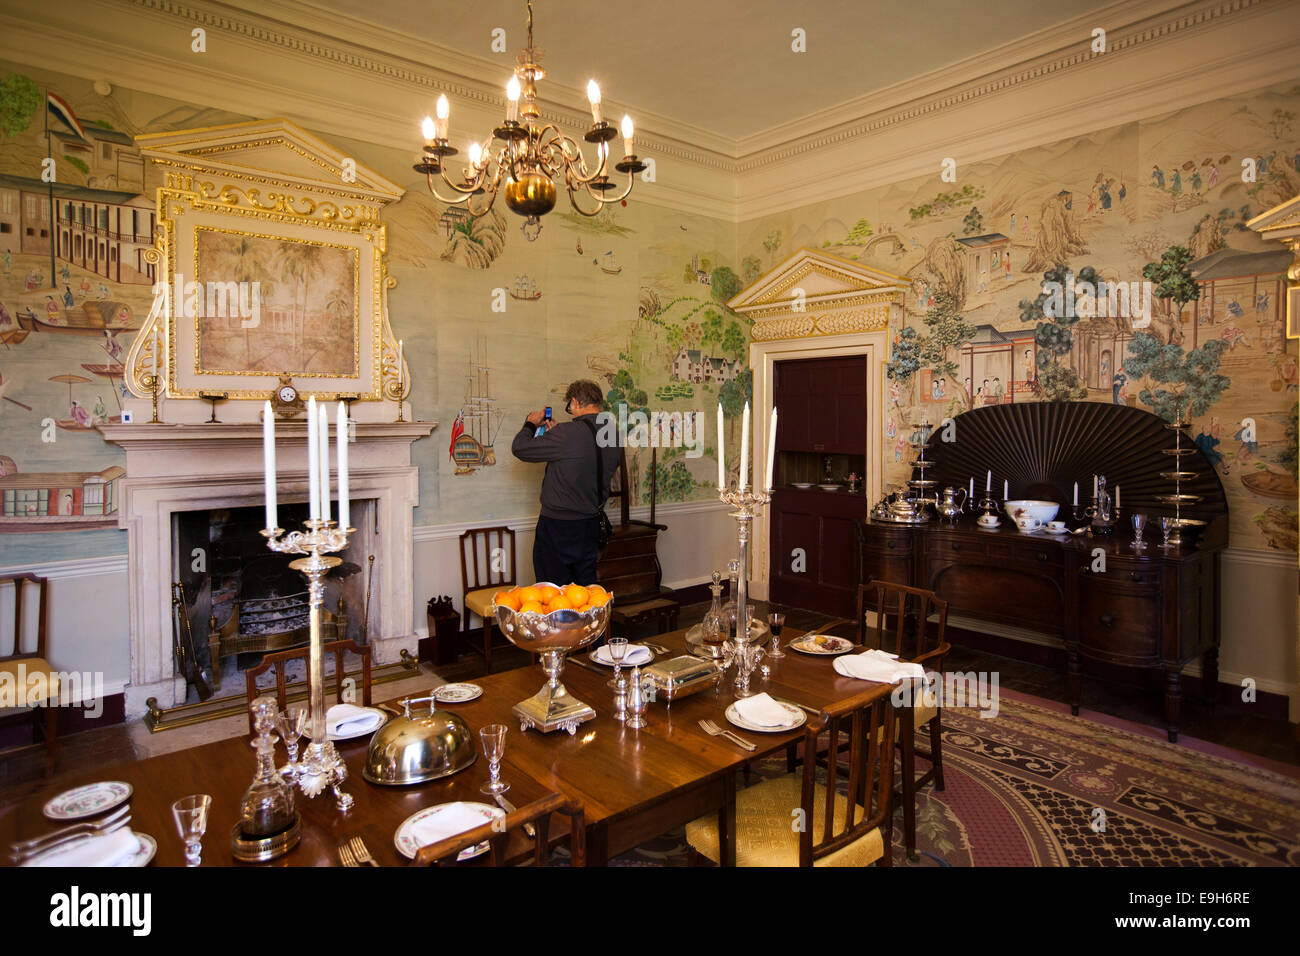 Dining Room Wallpaper Uk Part - 19: UK, England, Wiltshire, Avebury Manor, Governor Of Jamaica Dining Room,  With Fromental Hand Painted Wallpaper